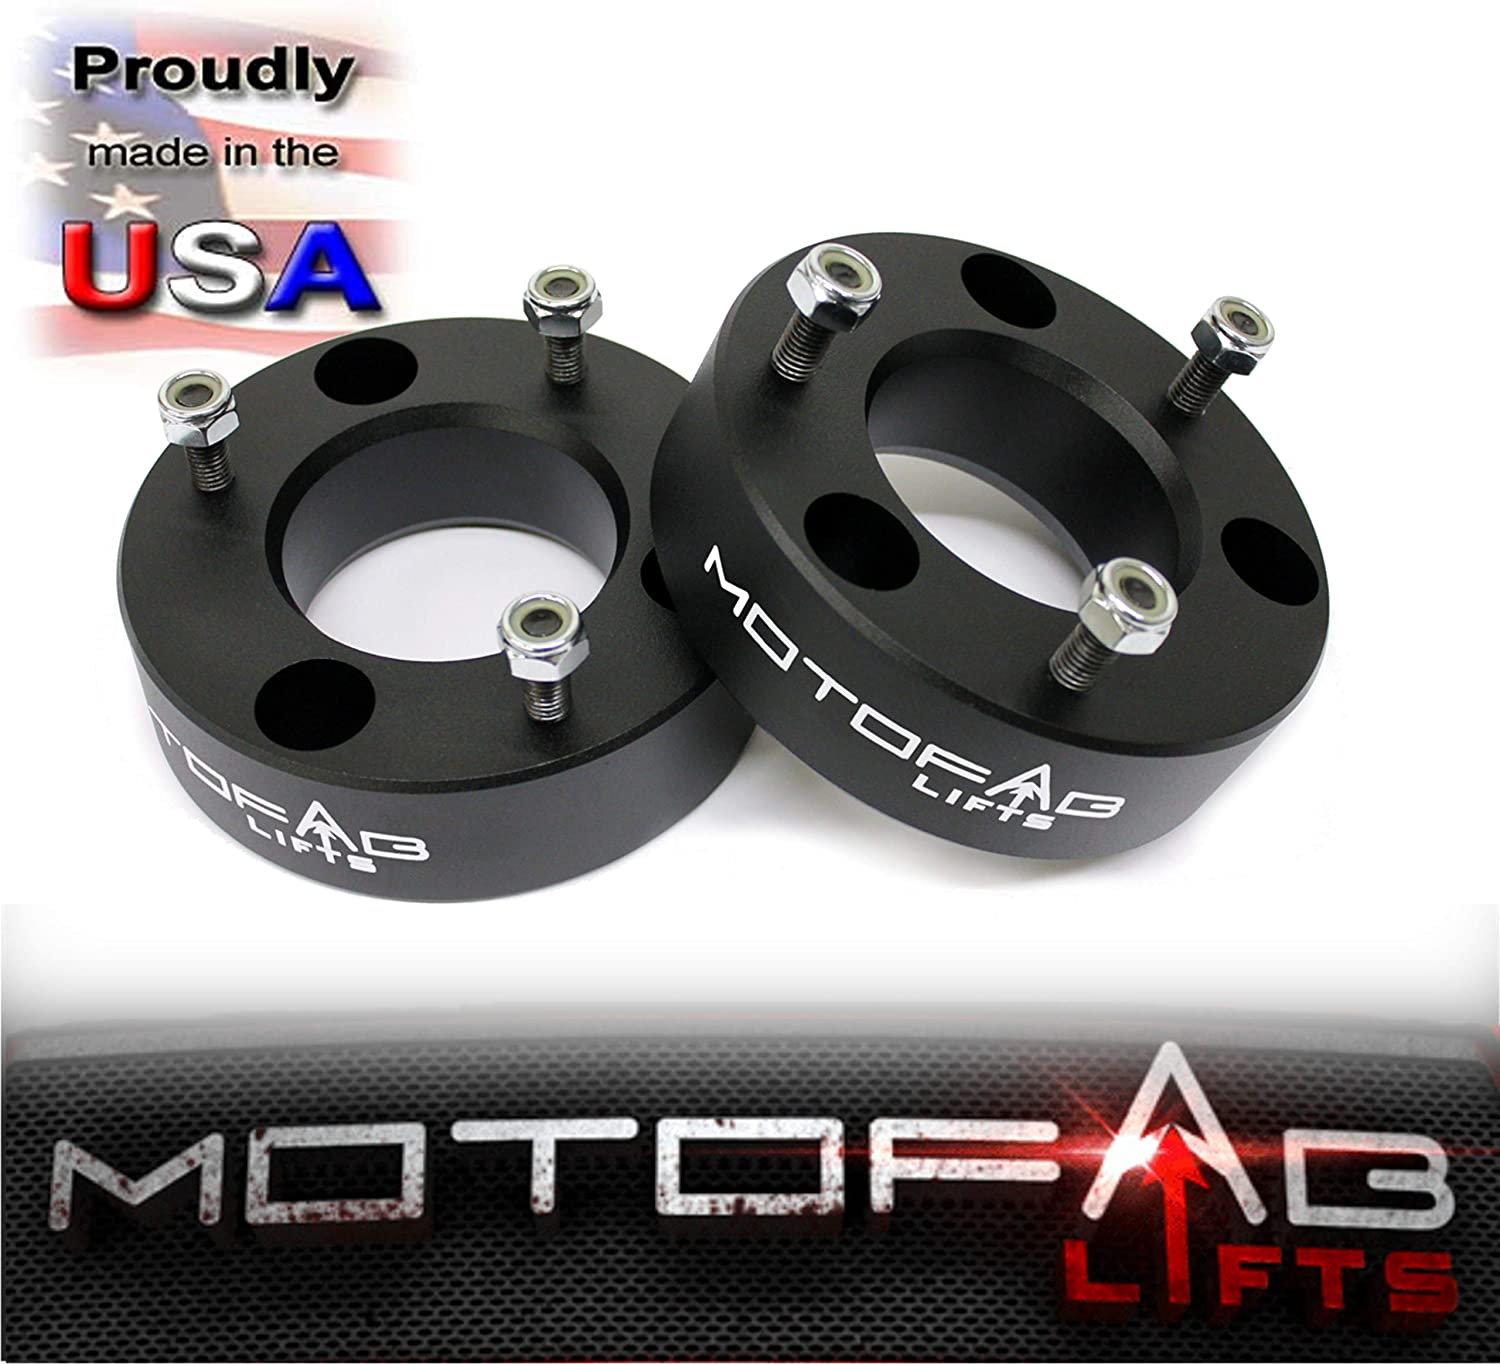 MotoFab Lifts F150-2.5-2.5 Front Leveling Lift Kit That Will Raise The Front Of Your F150 2.5